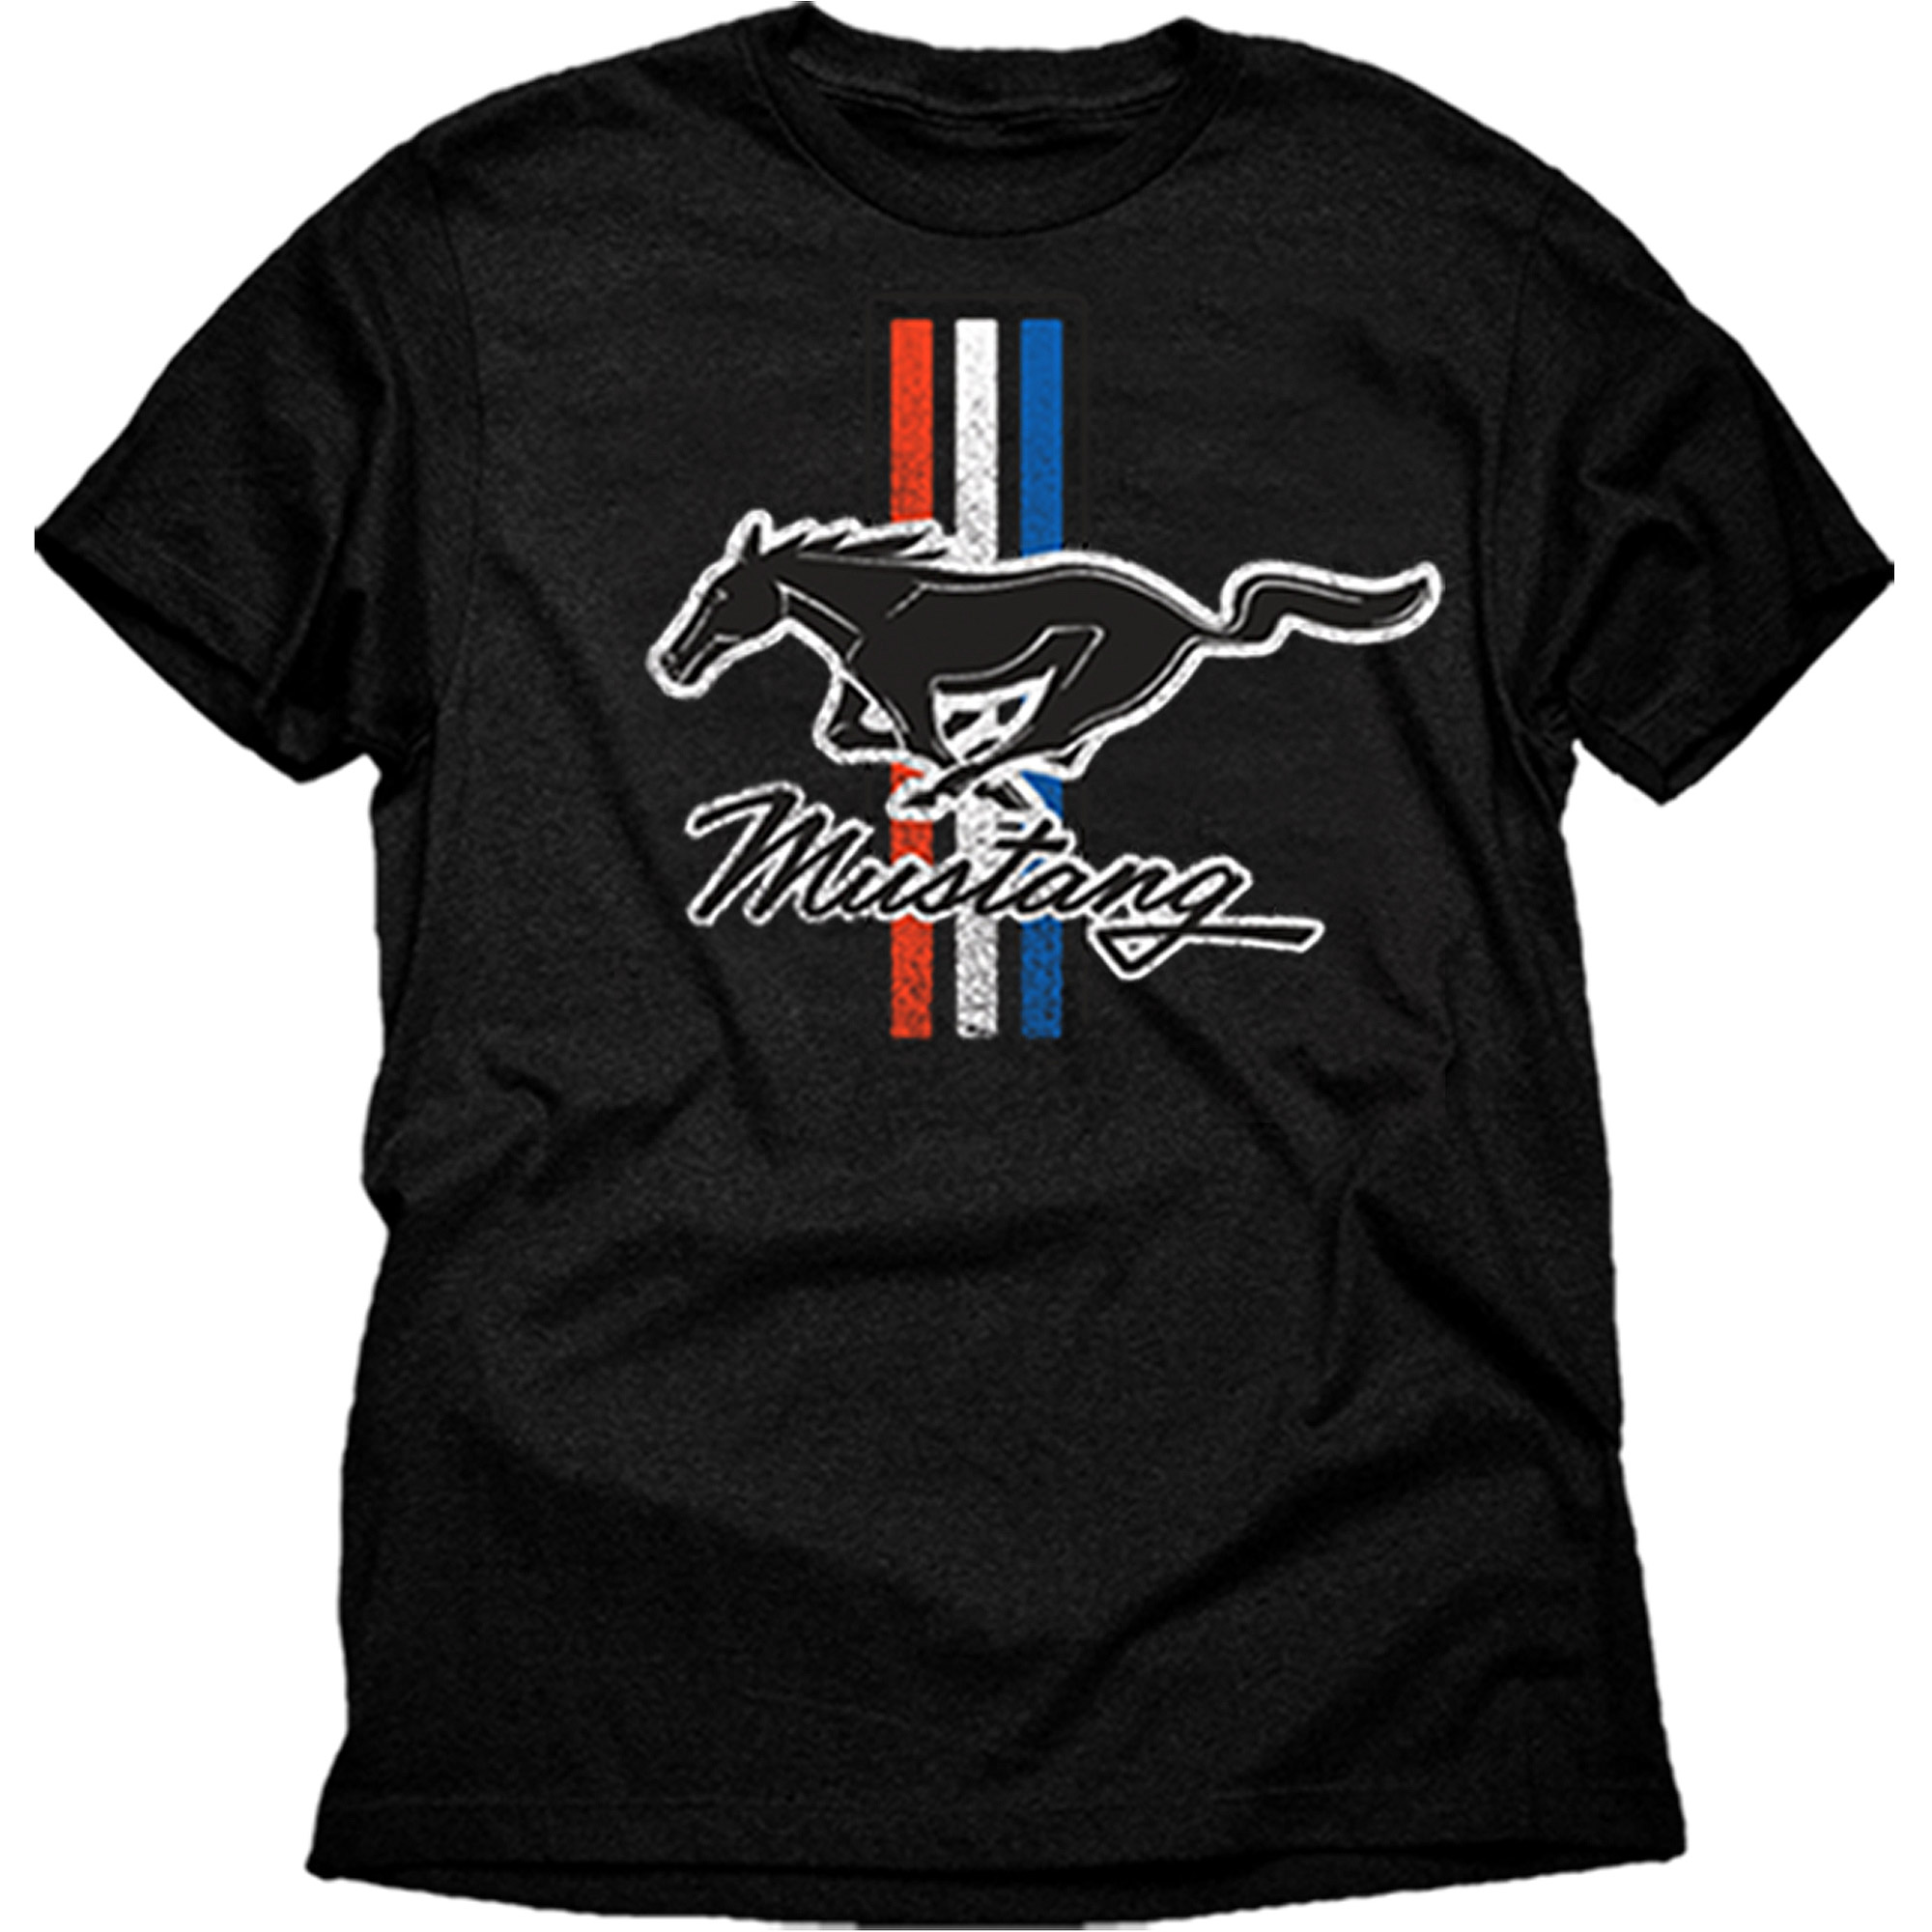 Mustang classic stripes Men's graphic tee shirt